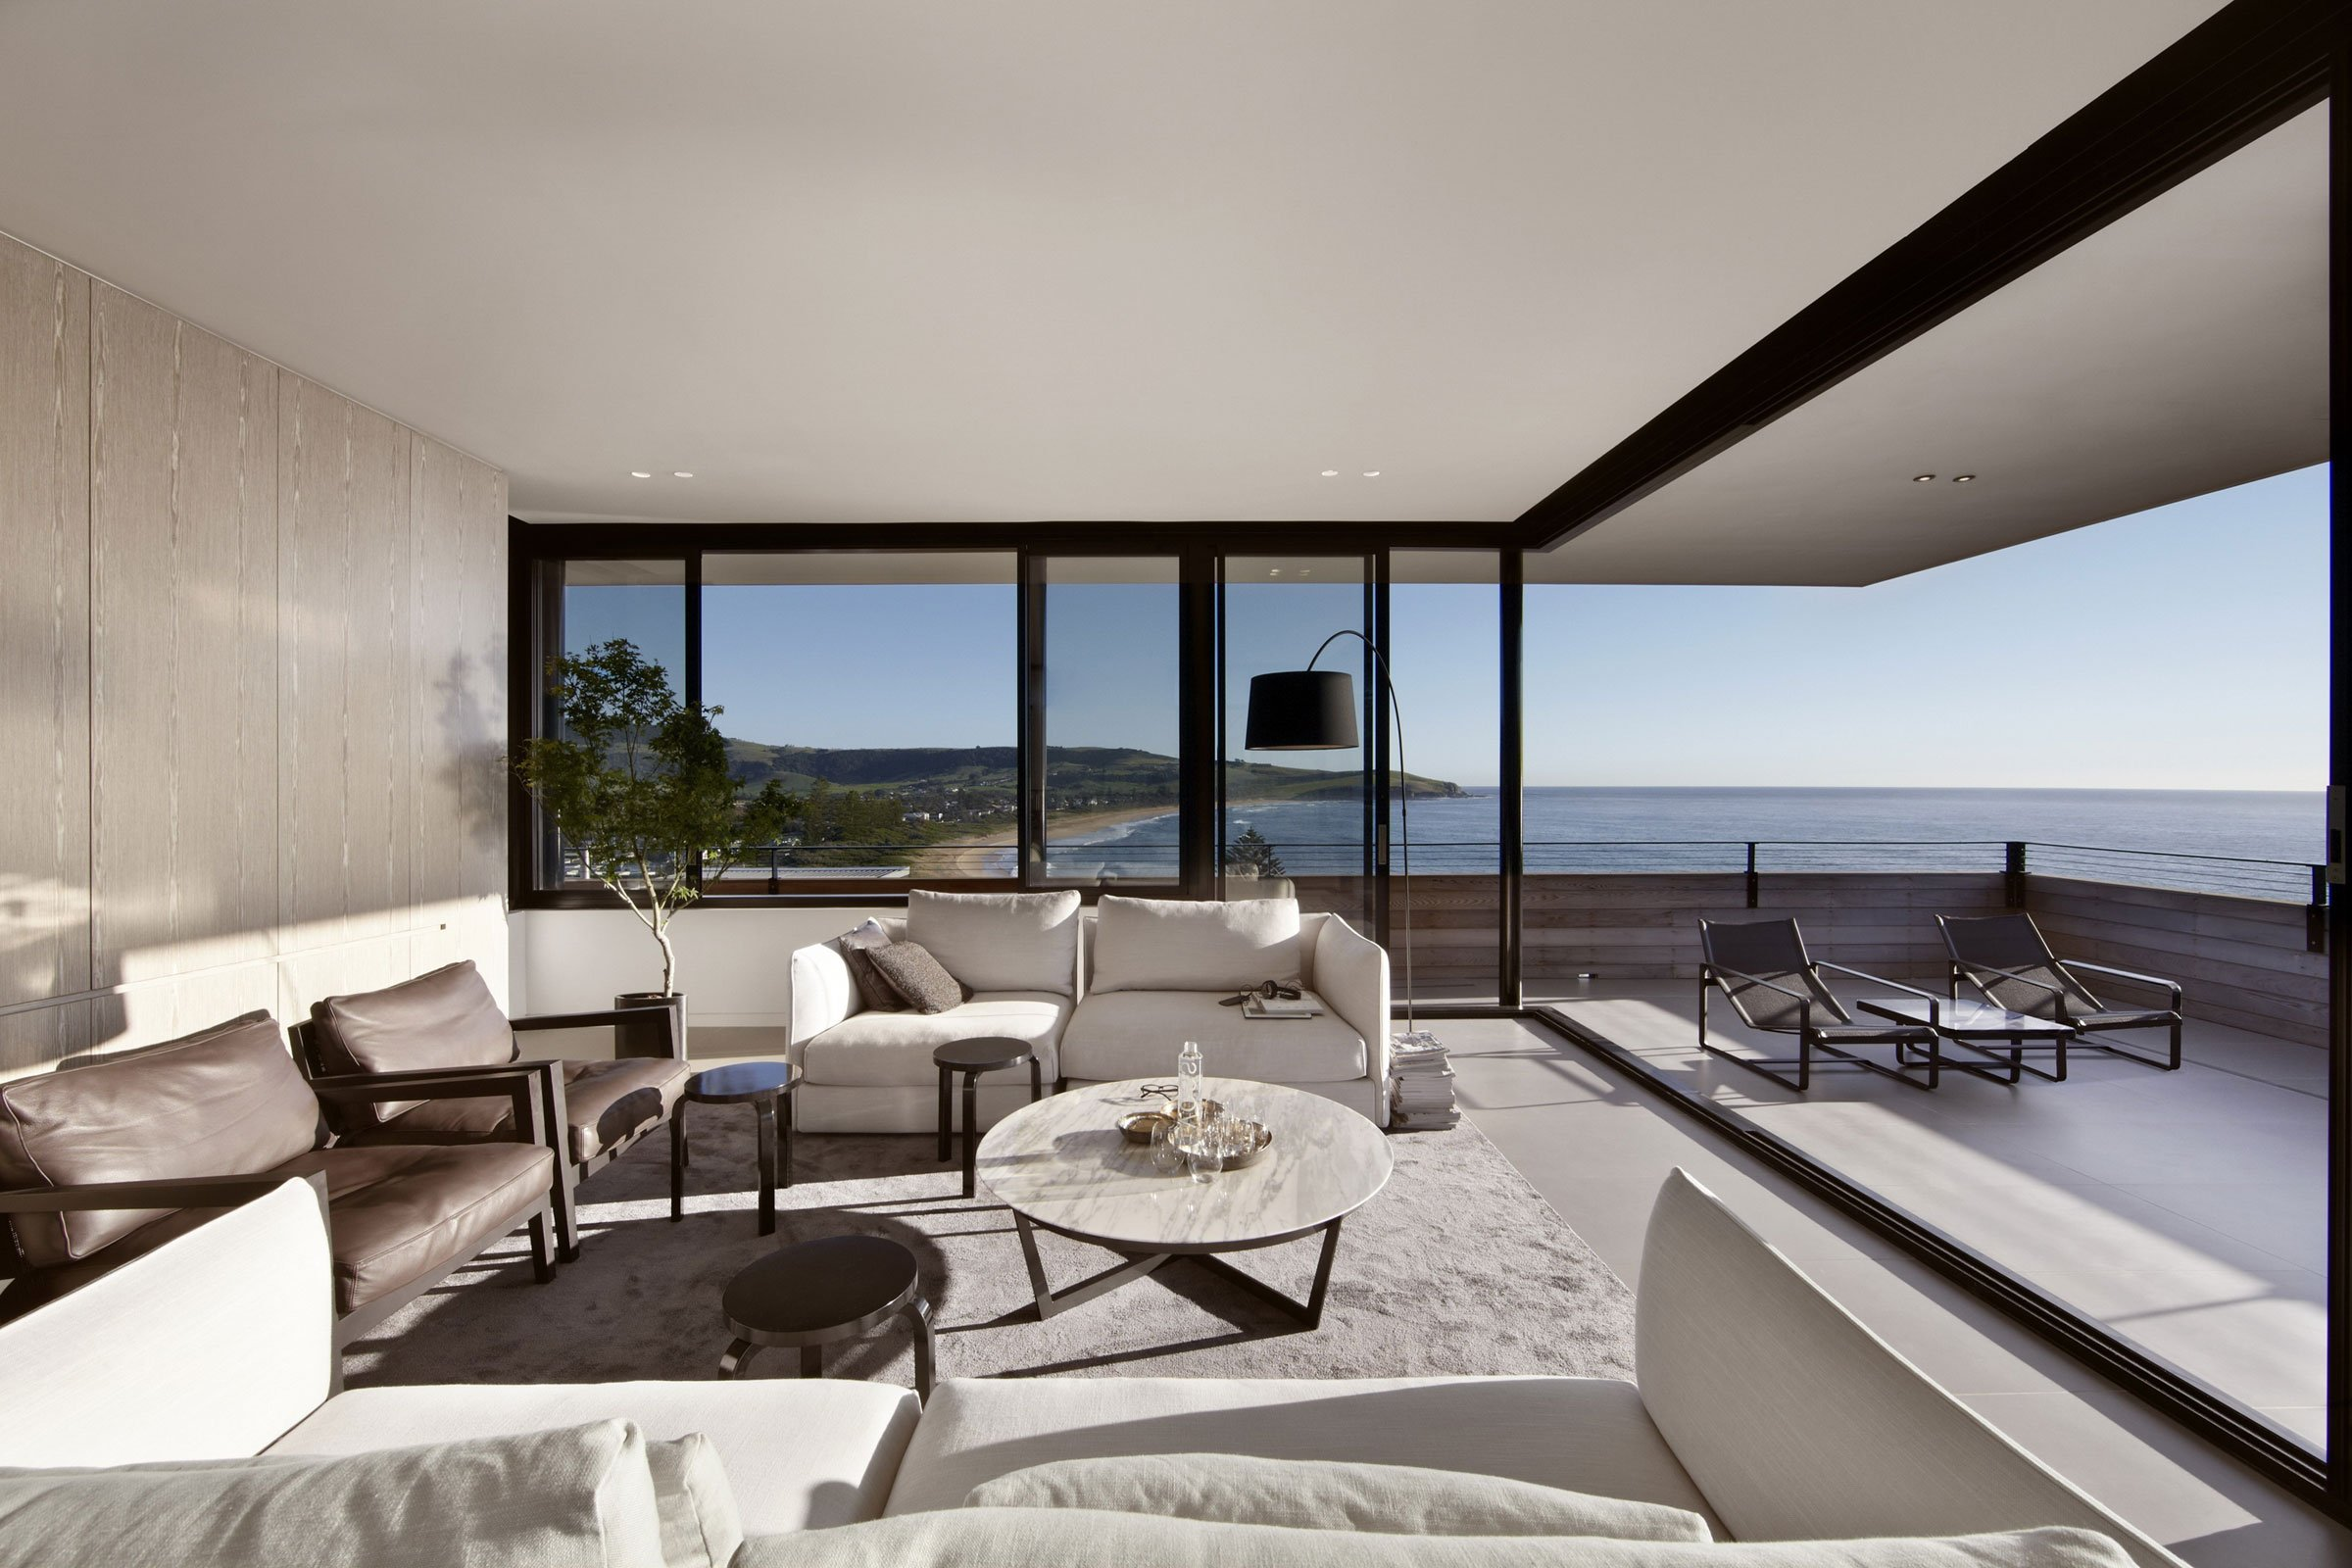 Lamble modern beach house with 270 views of the ocean by for Beach house design contemporary